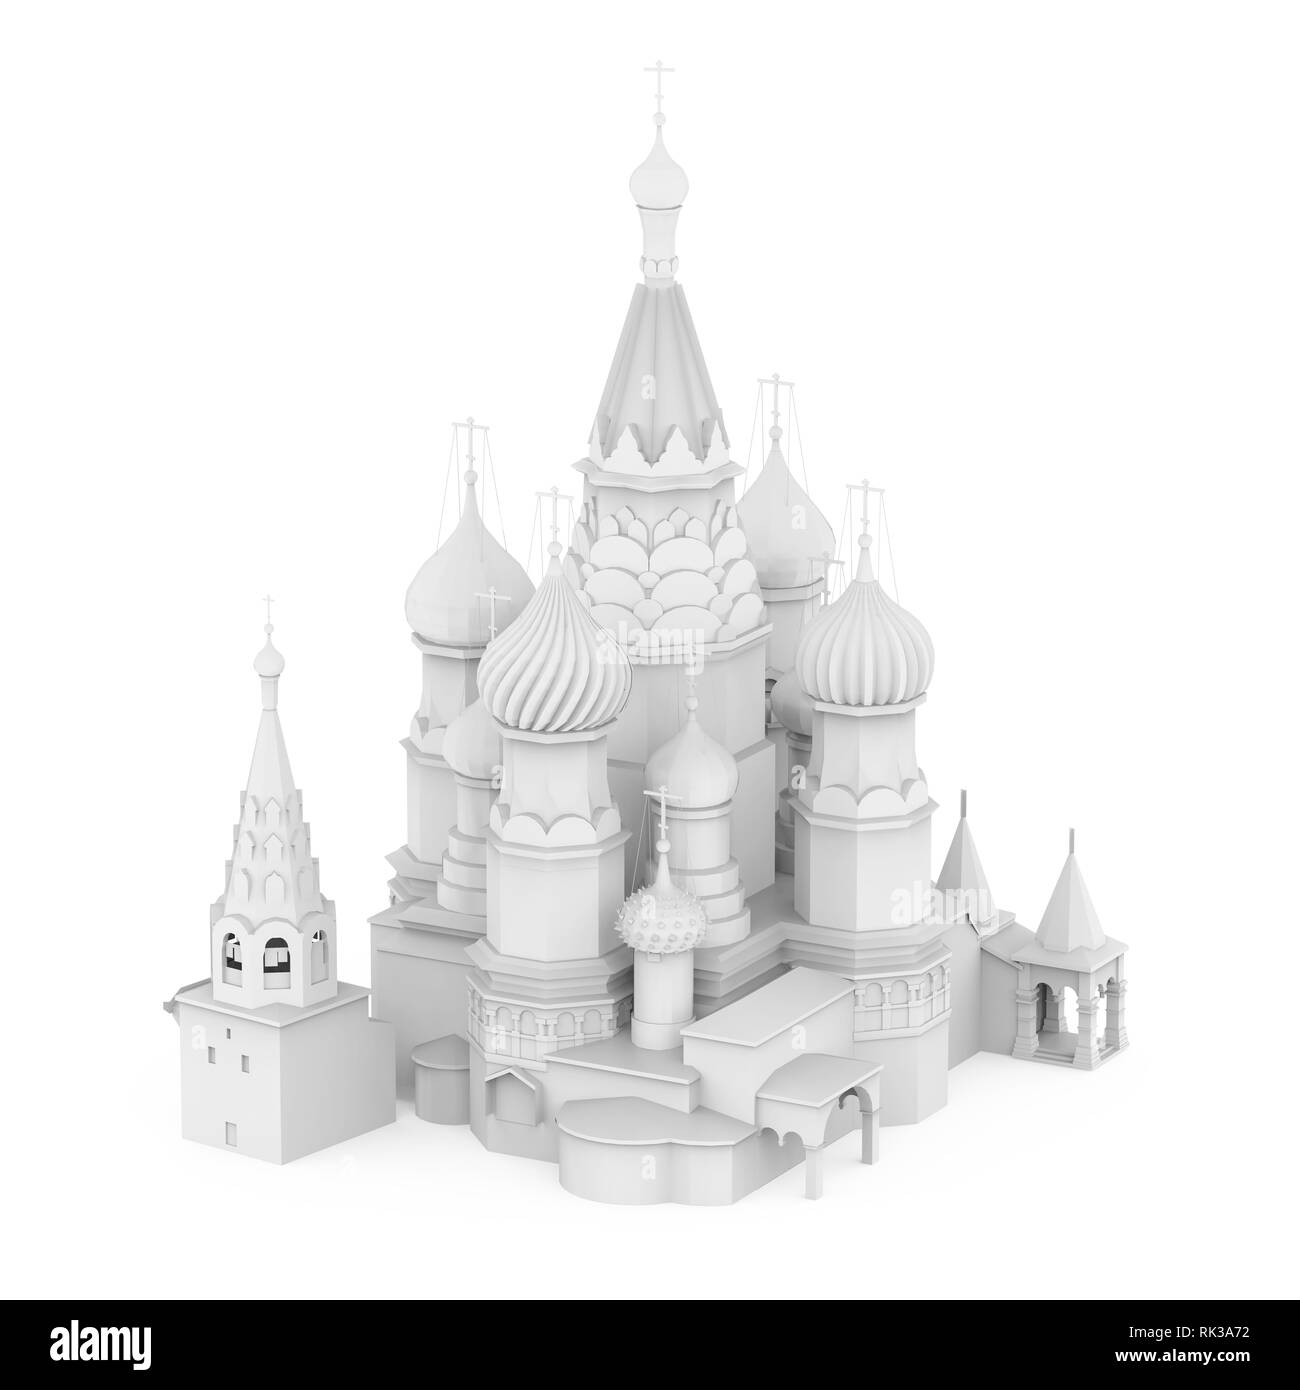 White Saint Basil's Cathedral Isolated - Stock Image